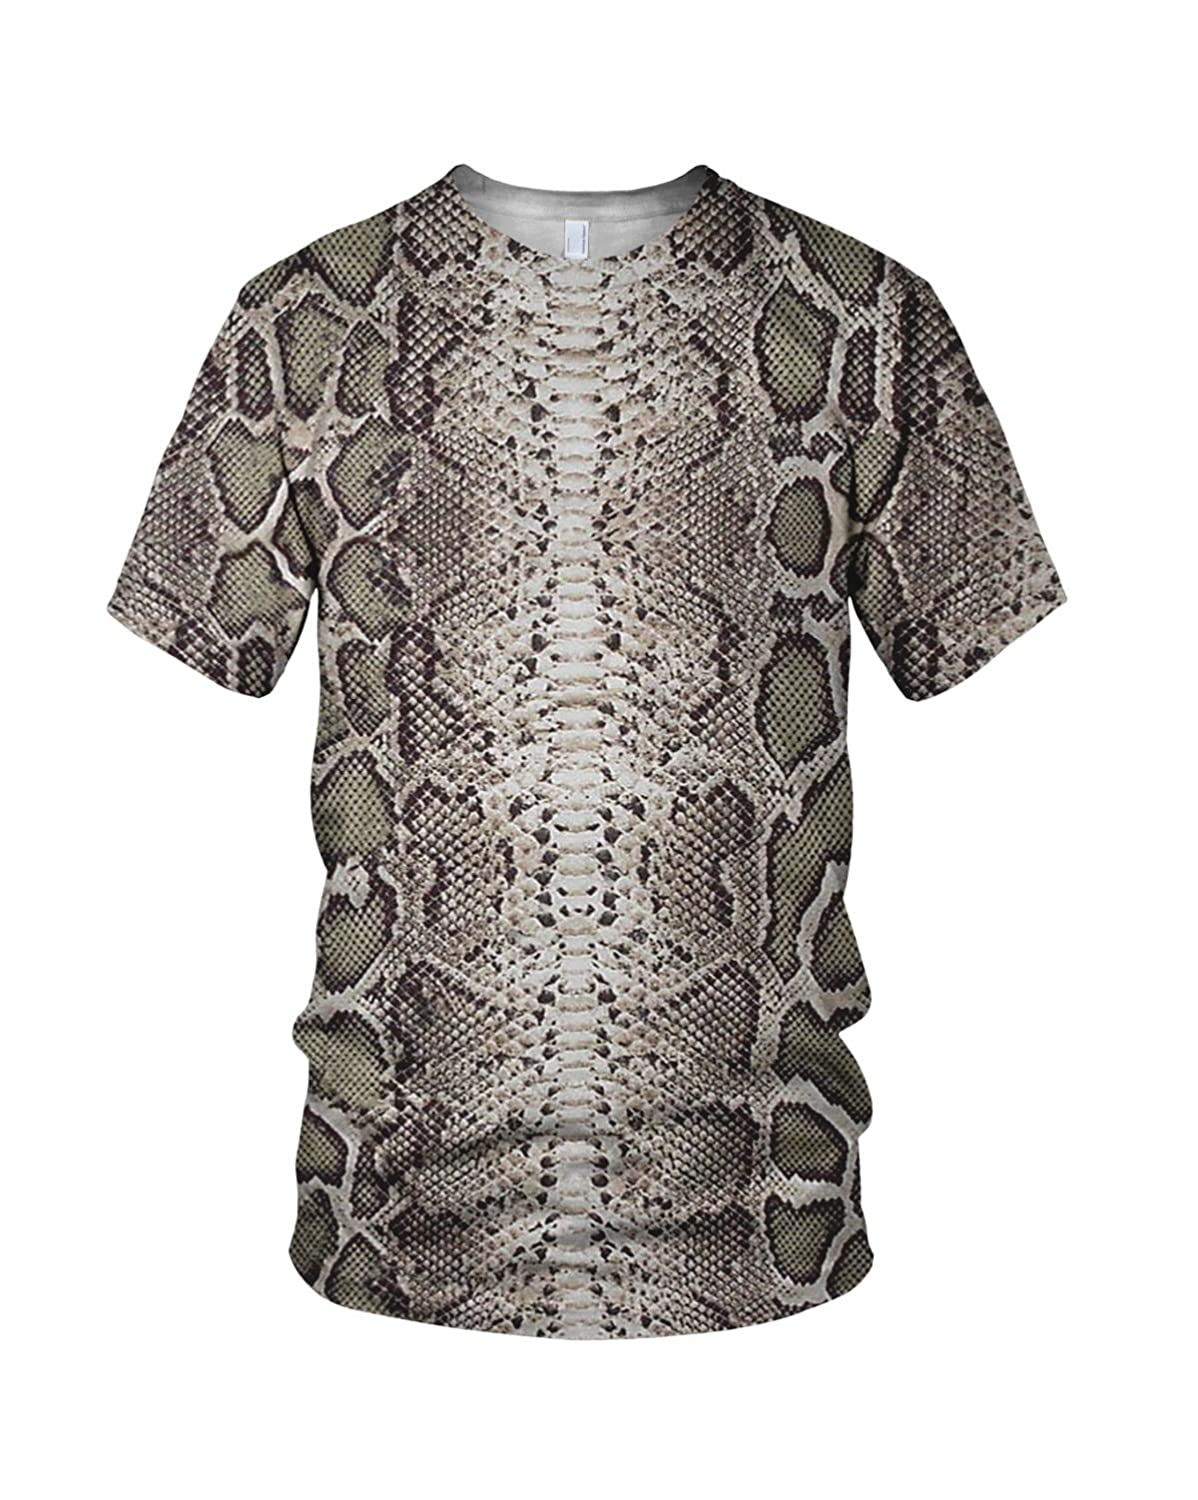 2bc46e0b Amazon.com: Zaza Men's All Over Print Snake Skin Related Fashion T Shirt:  Clothing